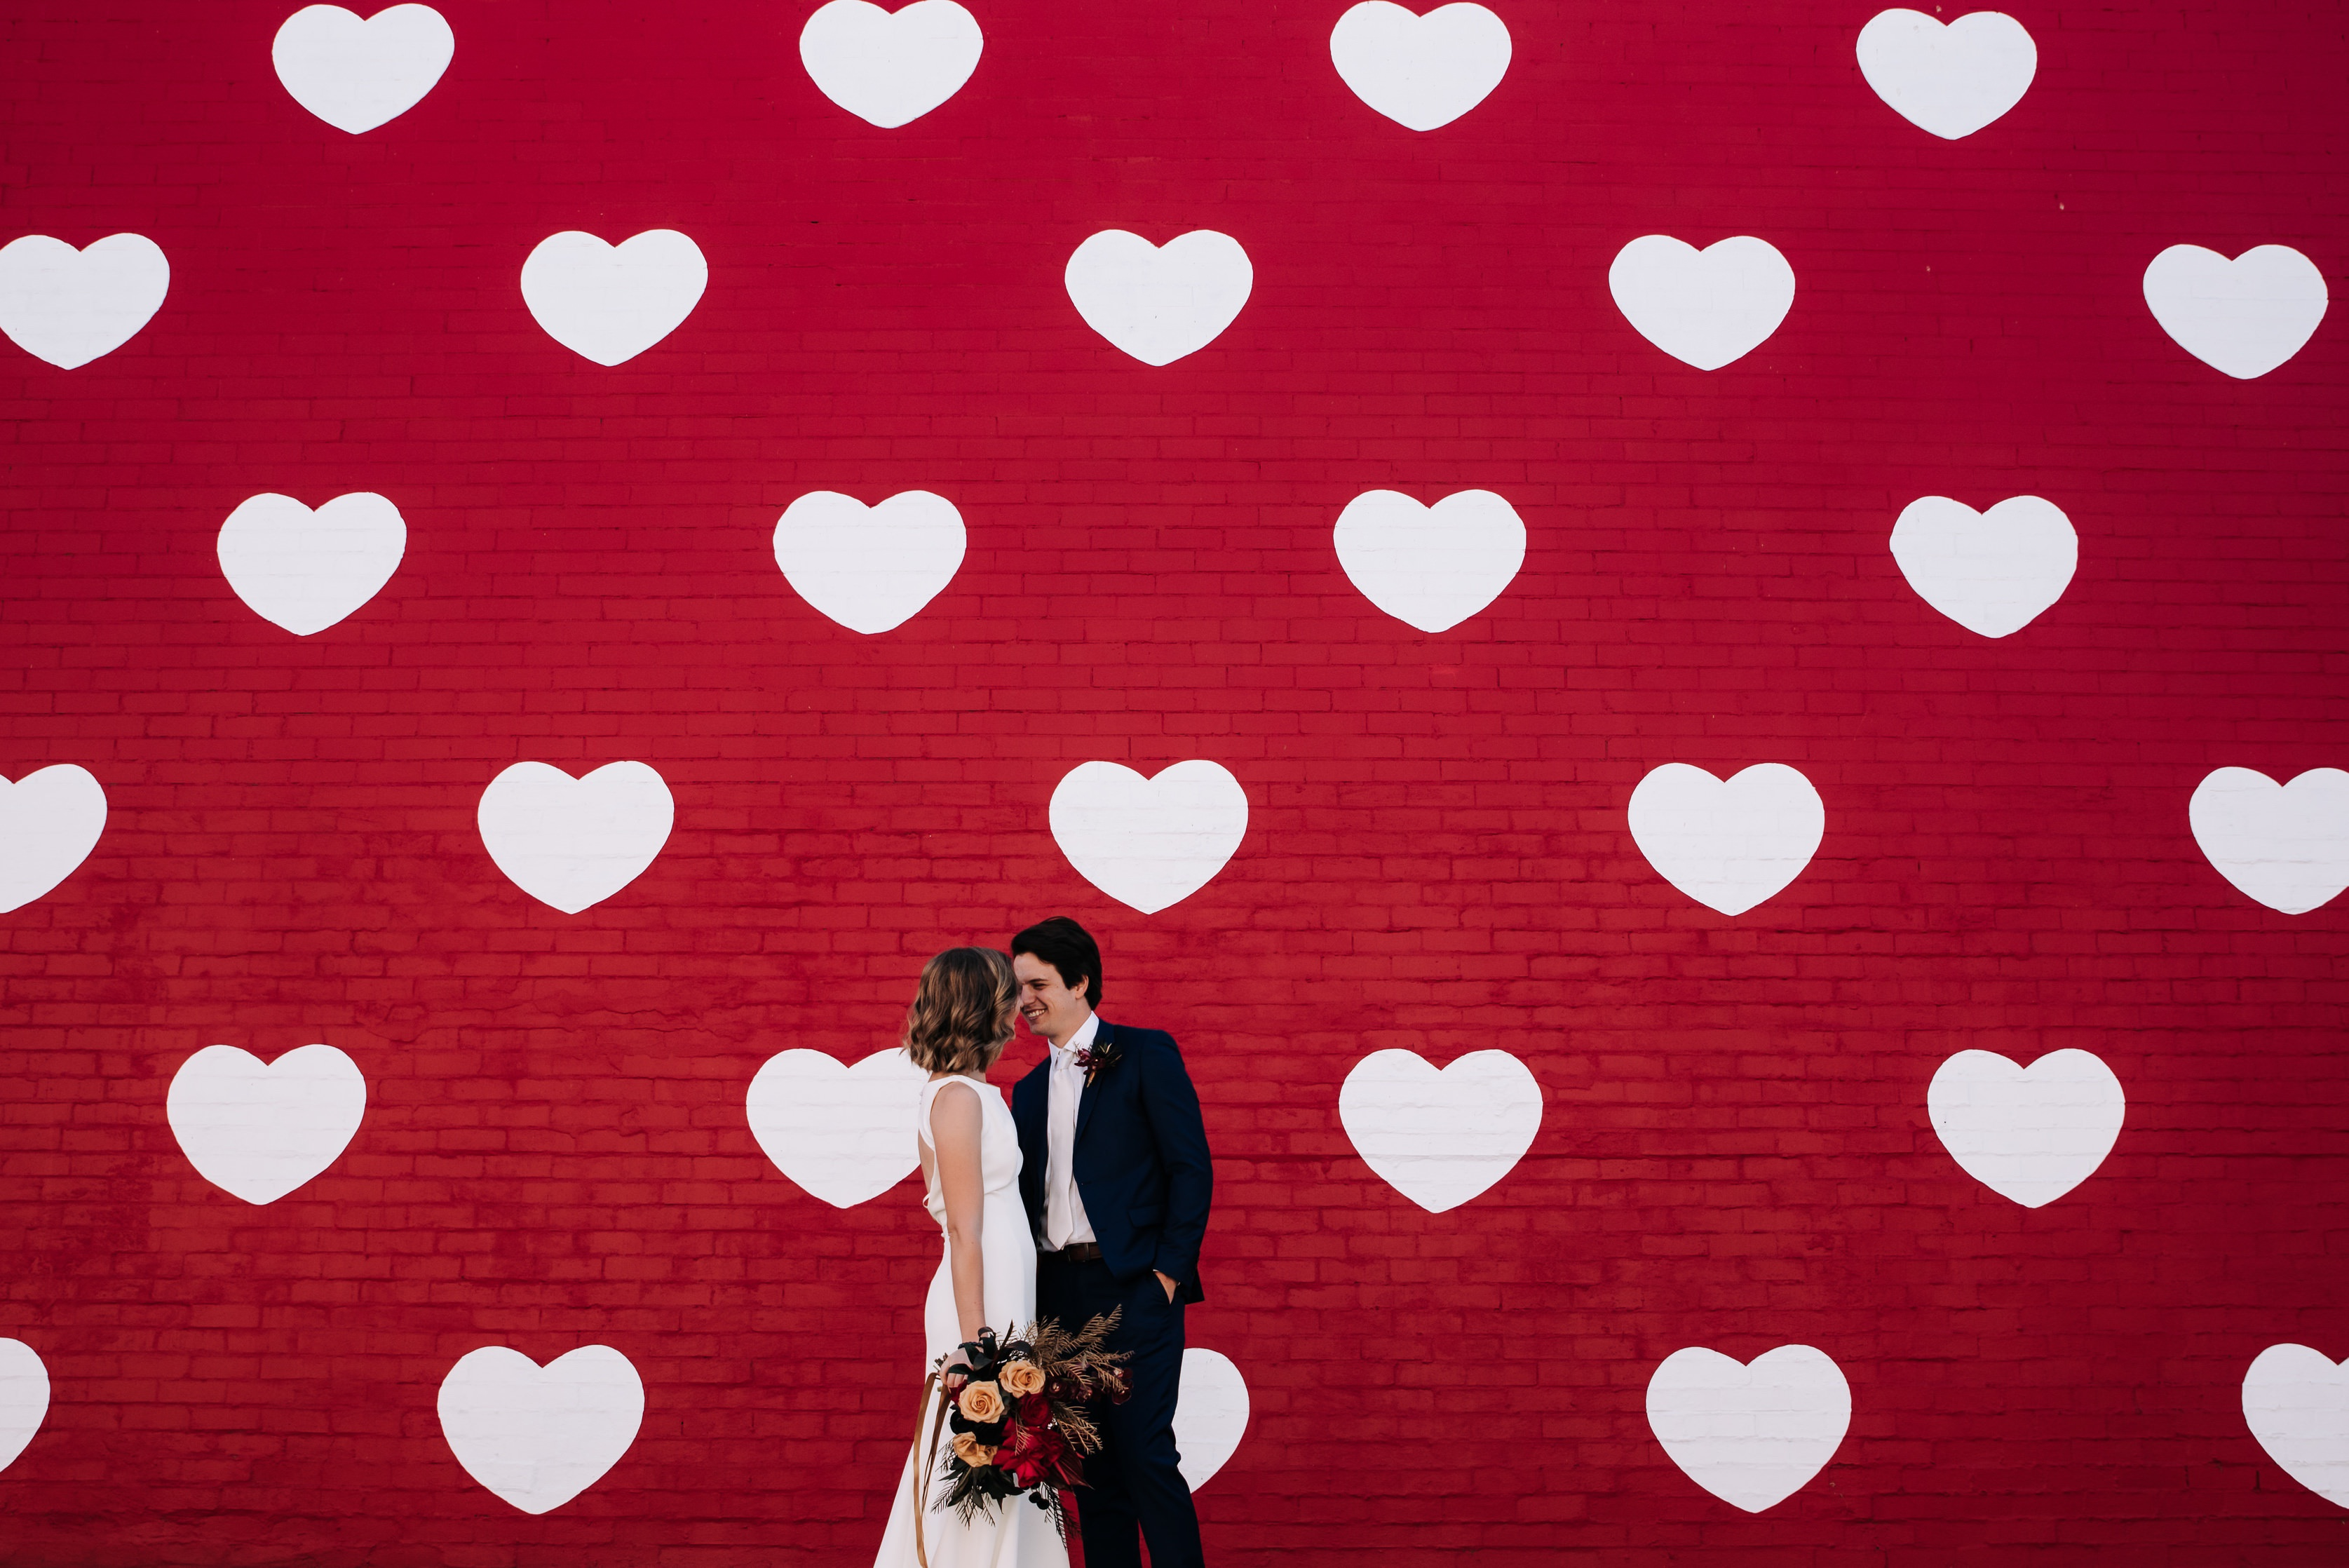 perth wedding photographer grafitti hearts wall 1